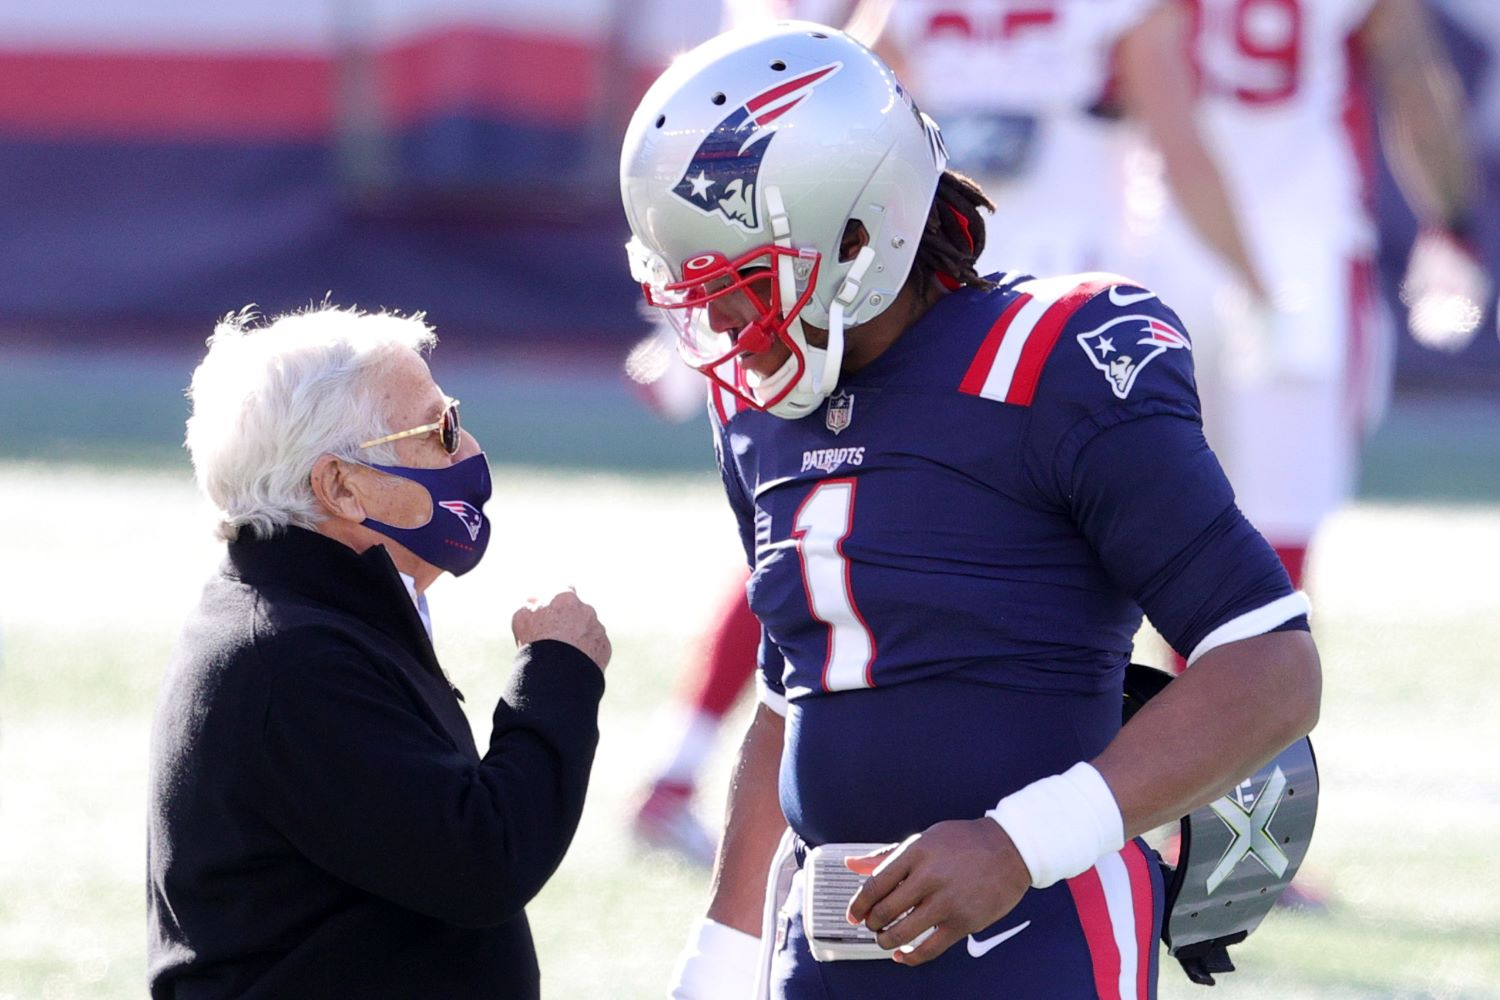 Cam Newton has forced Bill Belichick to make a franchise-altering decision. Will the Patriots make a change at the quarterback position?